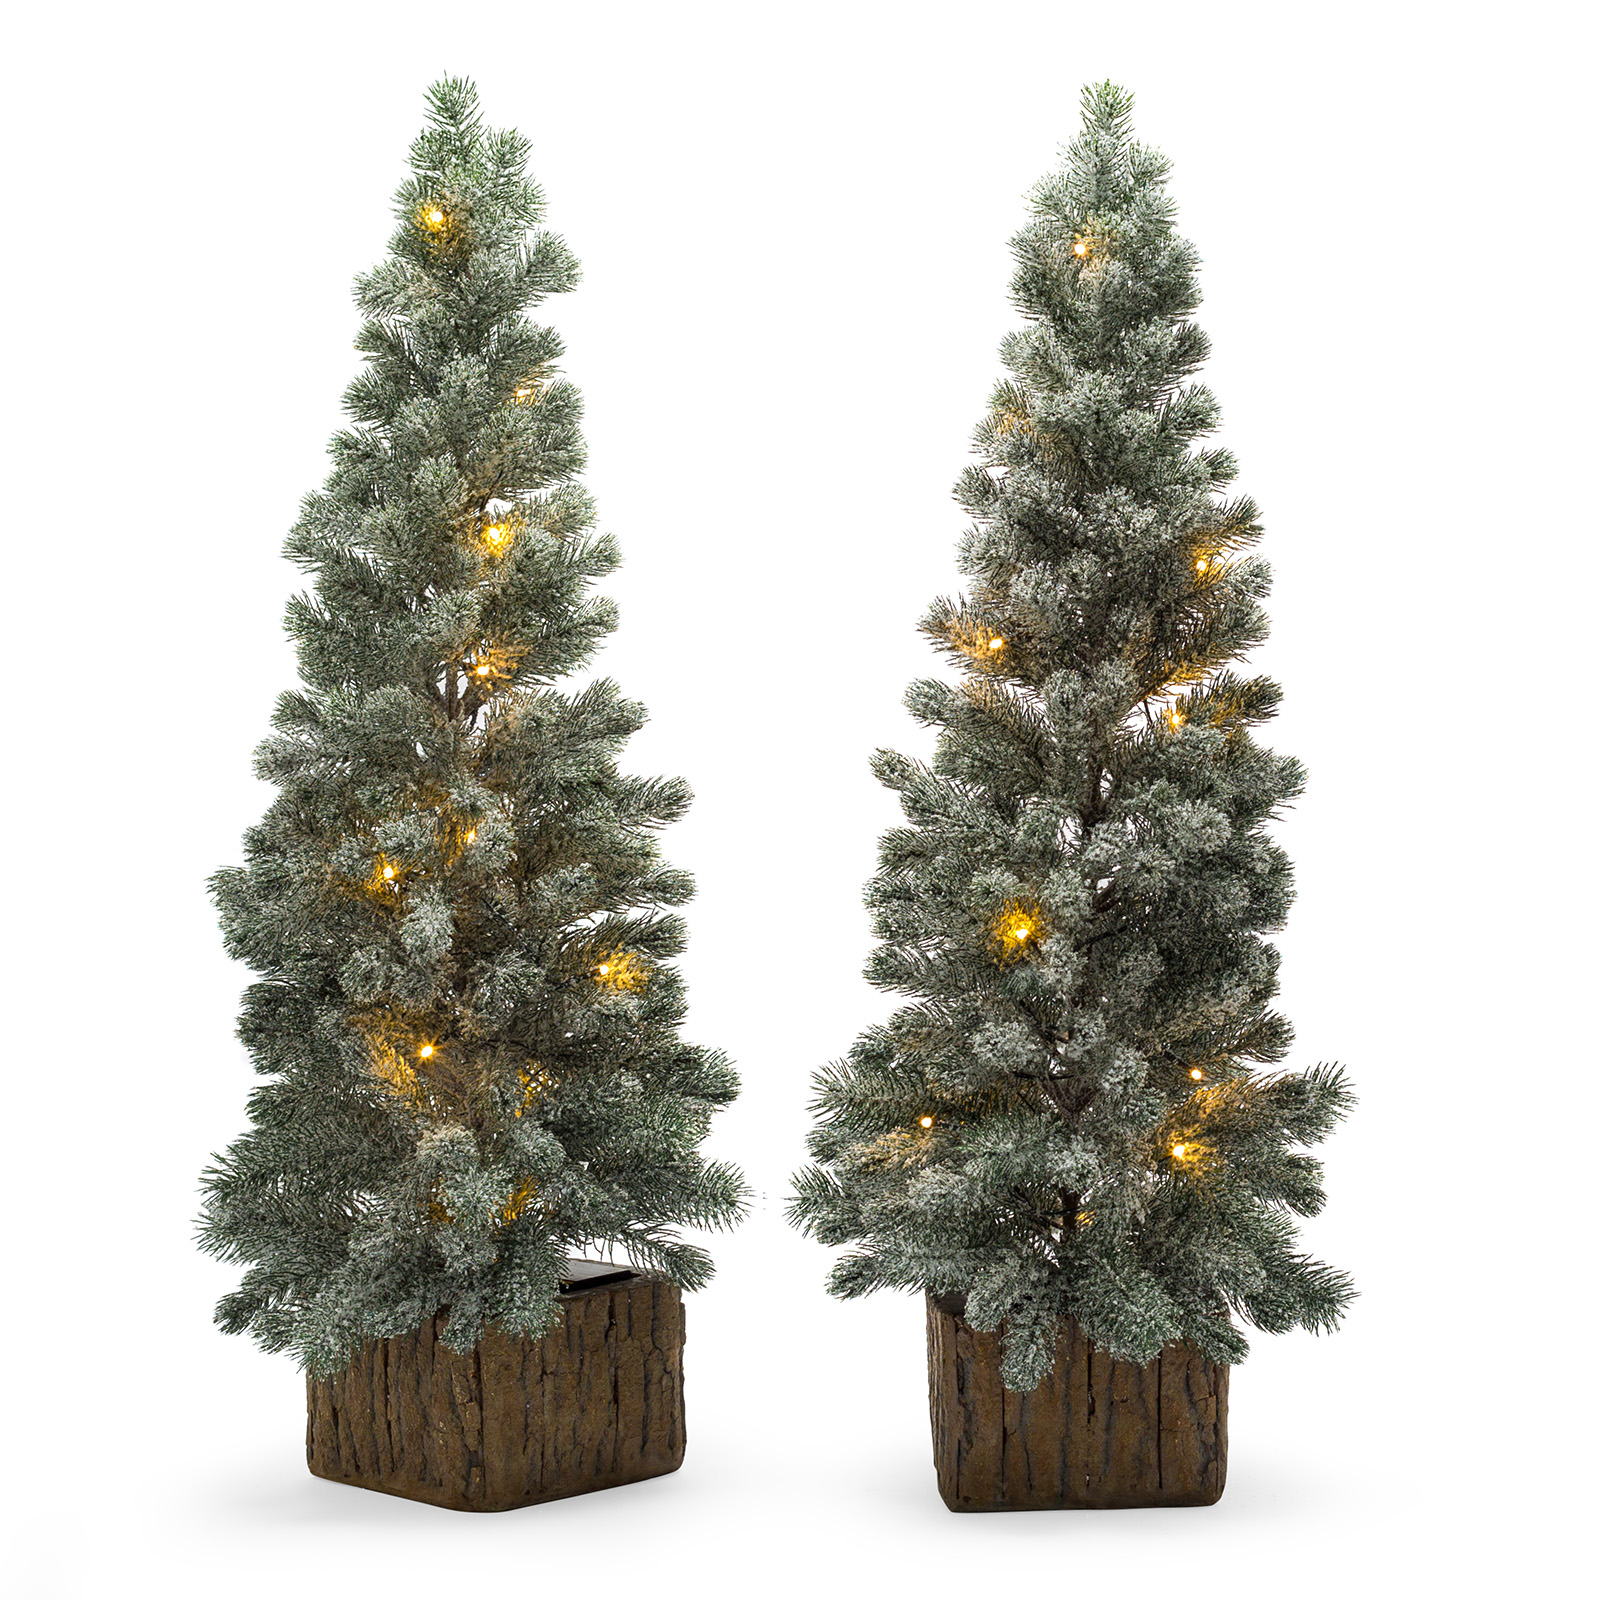 Belham Living 3ft Pre-Lit Flocked Door Step Artificial Christmas Trees with Clear Lights - Green